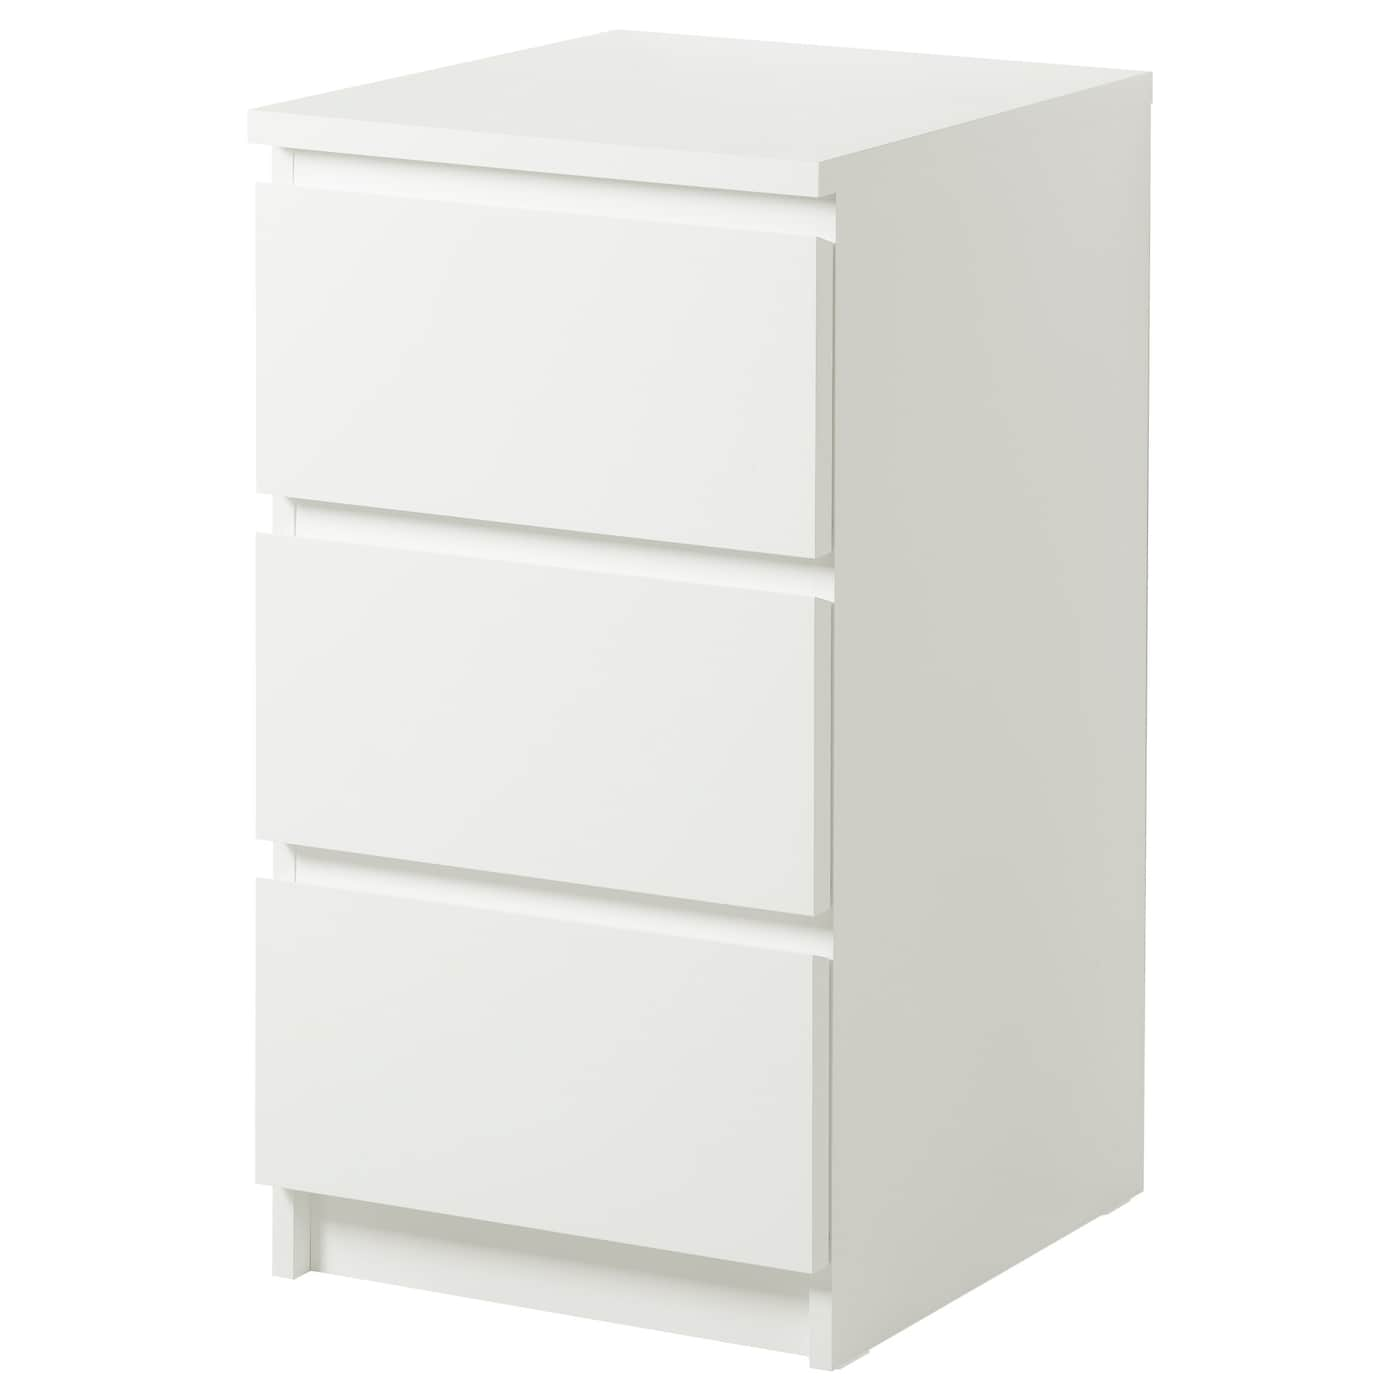 Malm chest of 4 drawers white 80x100 cm ikea for Schrank 90 breit